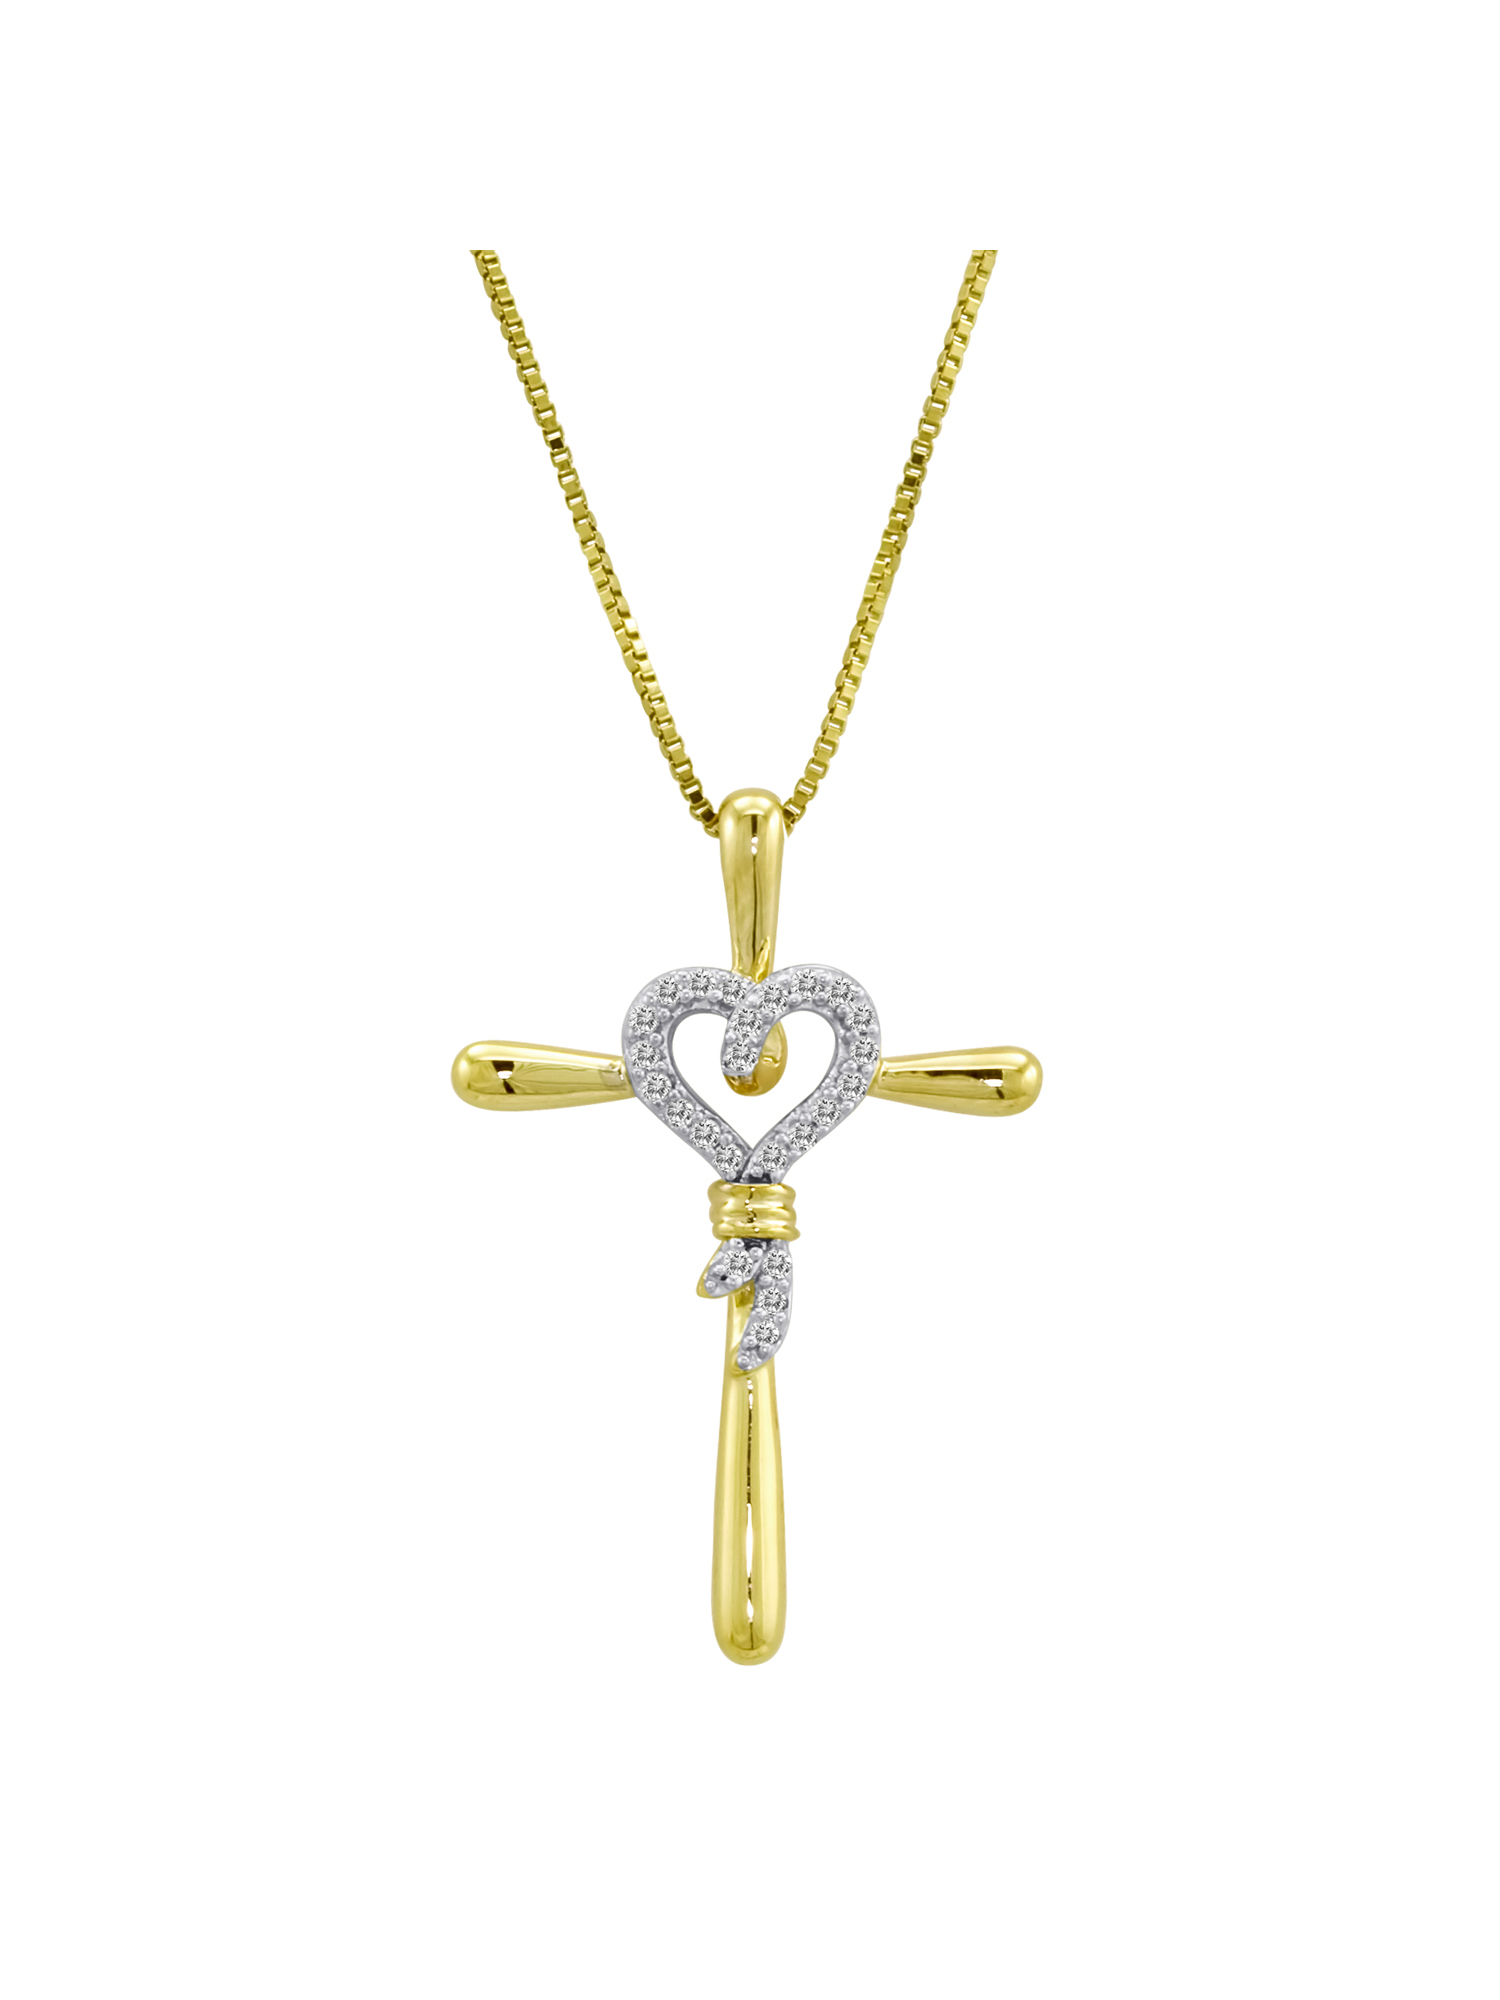 14kt Yellow Gold over Sterling Silver 1/10 Carat T.W. Diamond Cross Pendant, 18